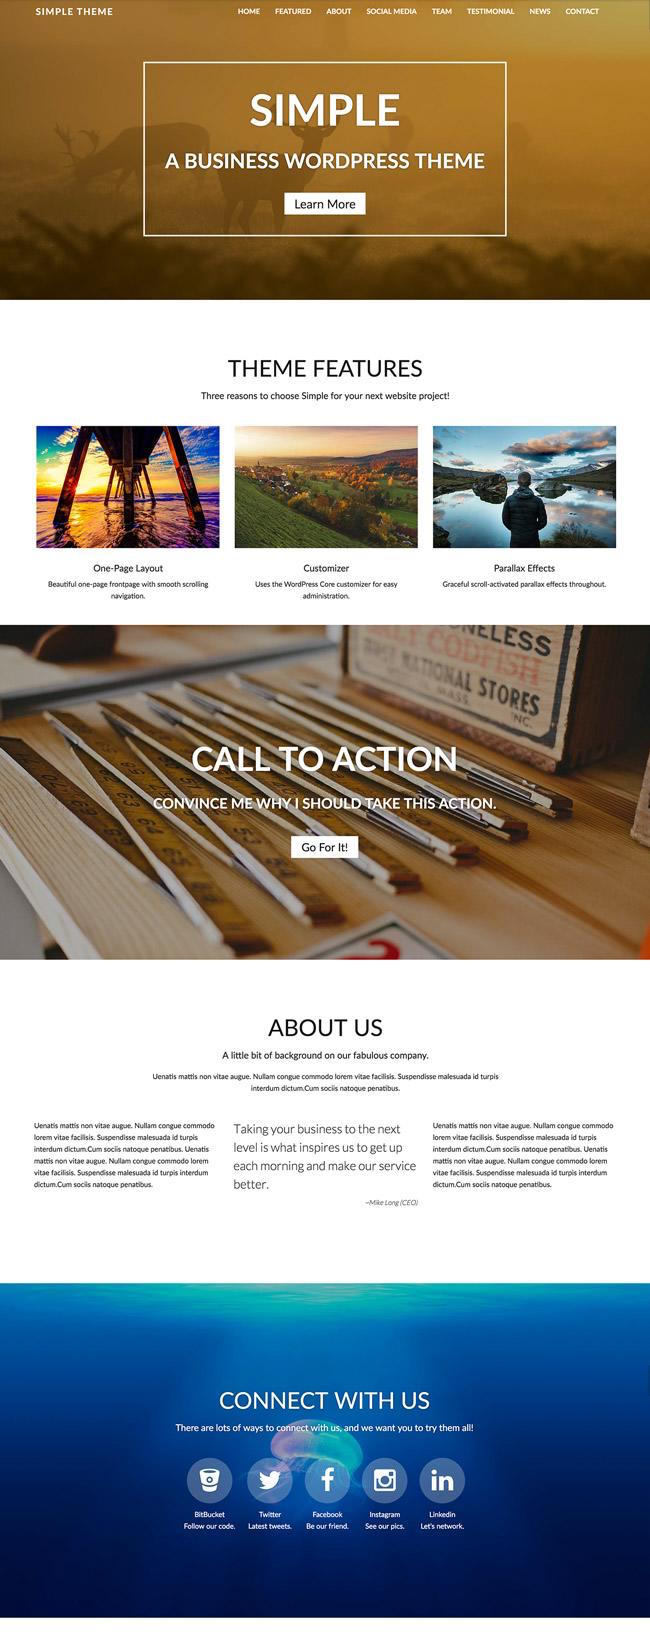 Simple-wordpress-theme